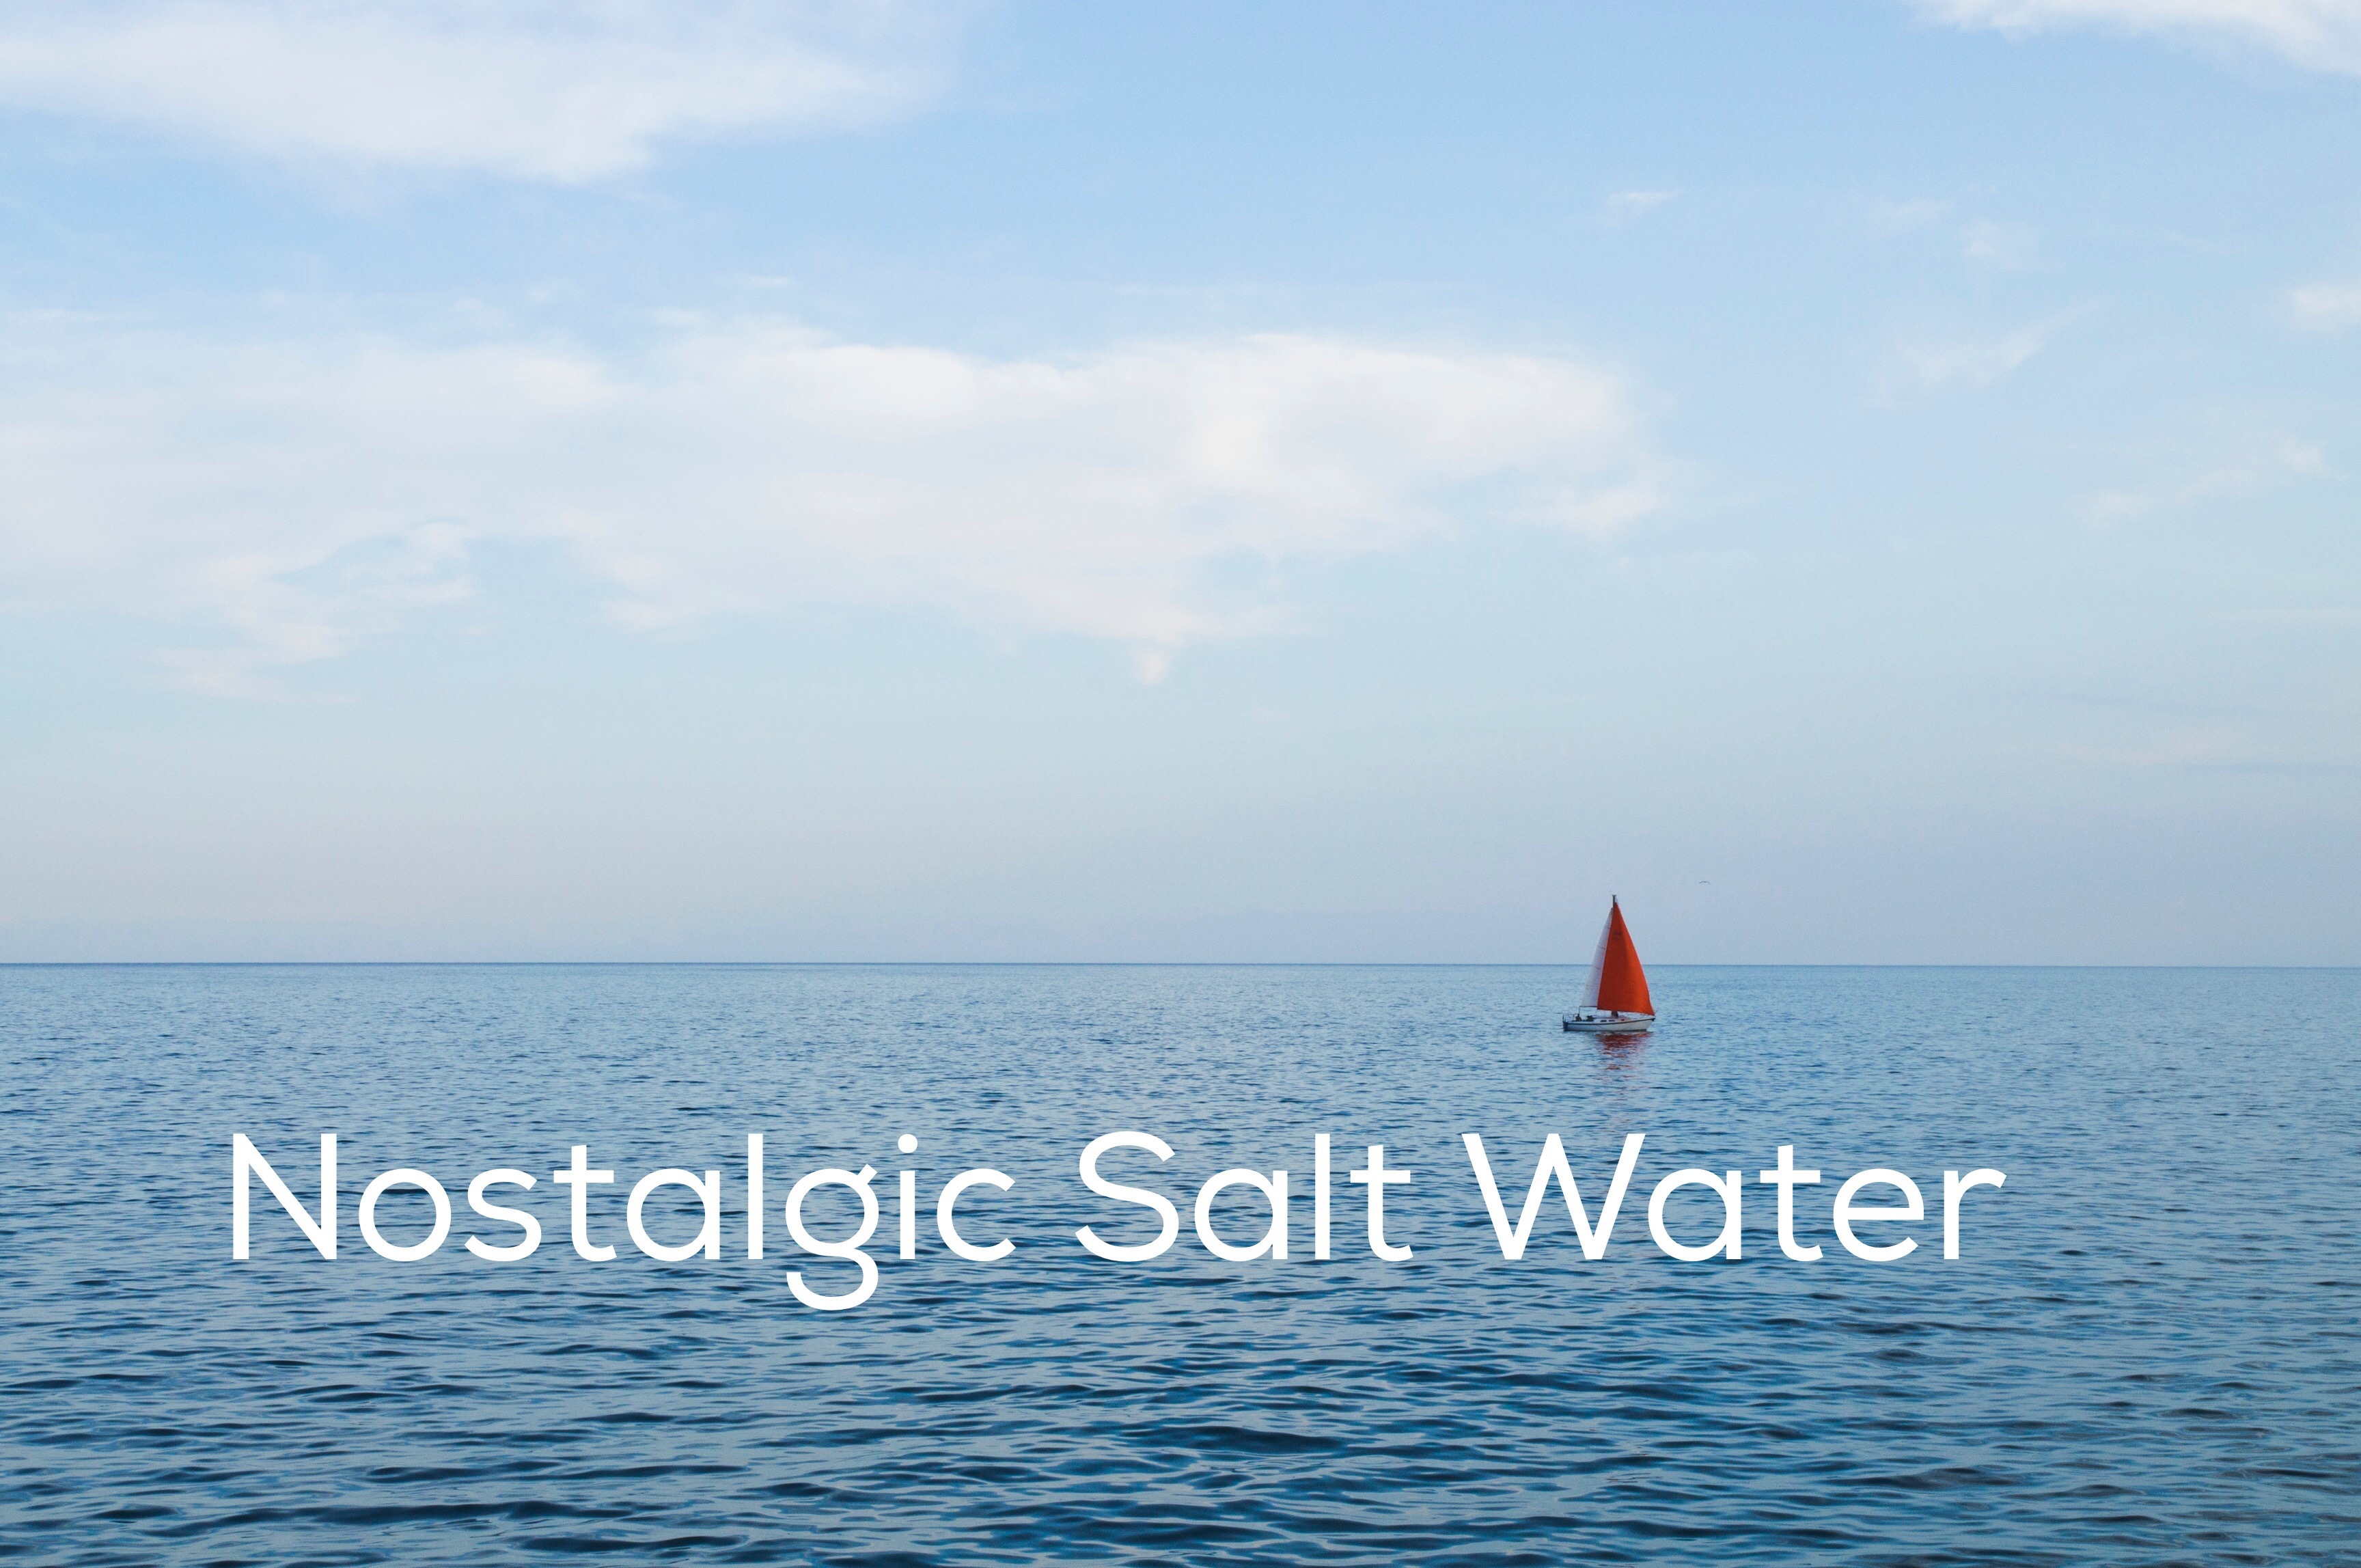 Nostalgic Salt Water: The Sounds of rowboats, walks on isolated coast lines, and songs inspired by the sea